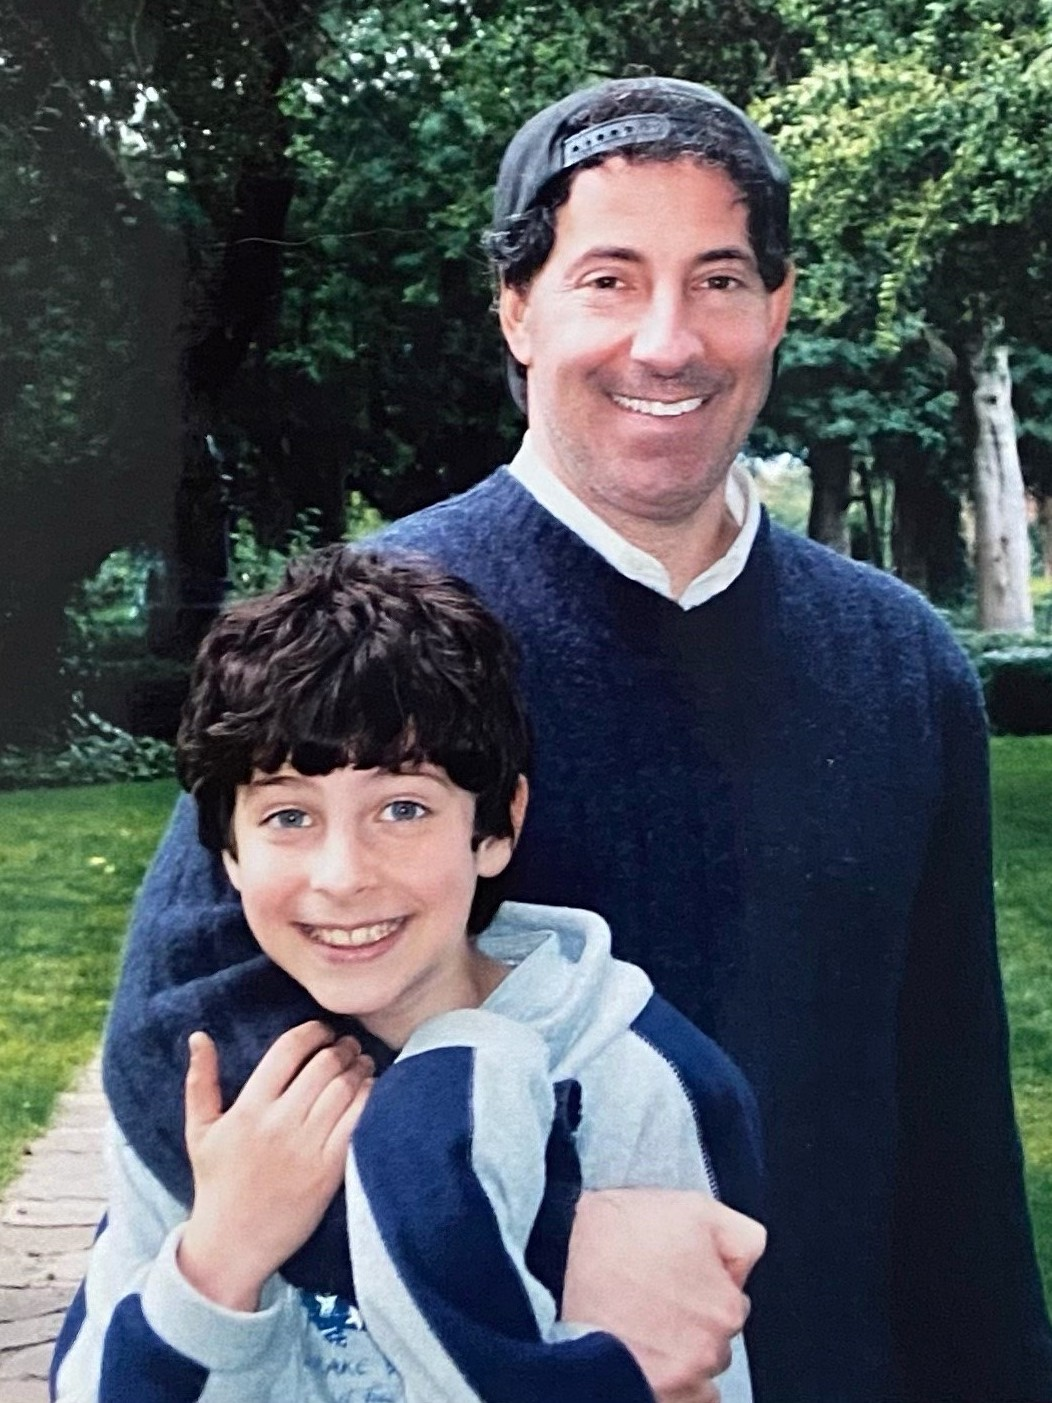 Rep. Jamie Raskin Remembers His Son, Tommy | NCPR News